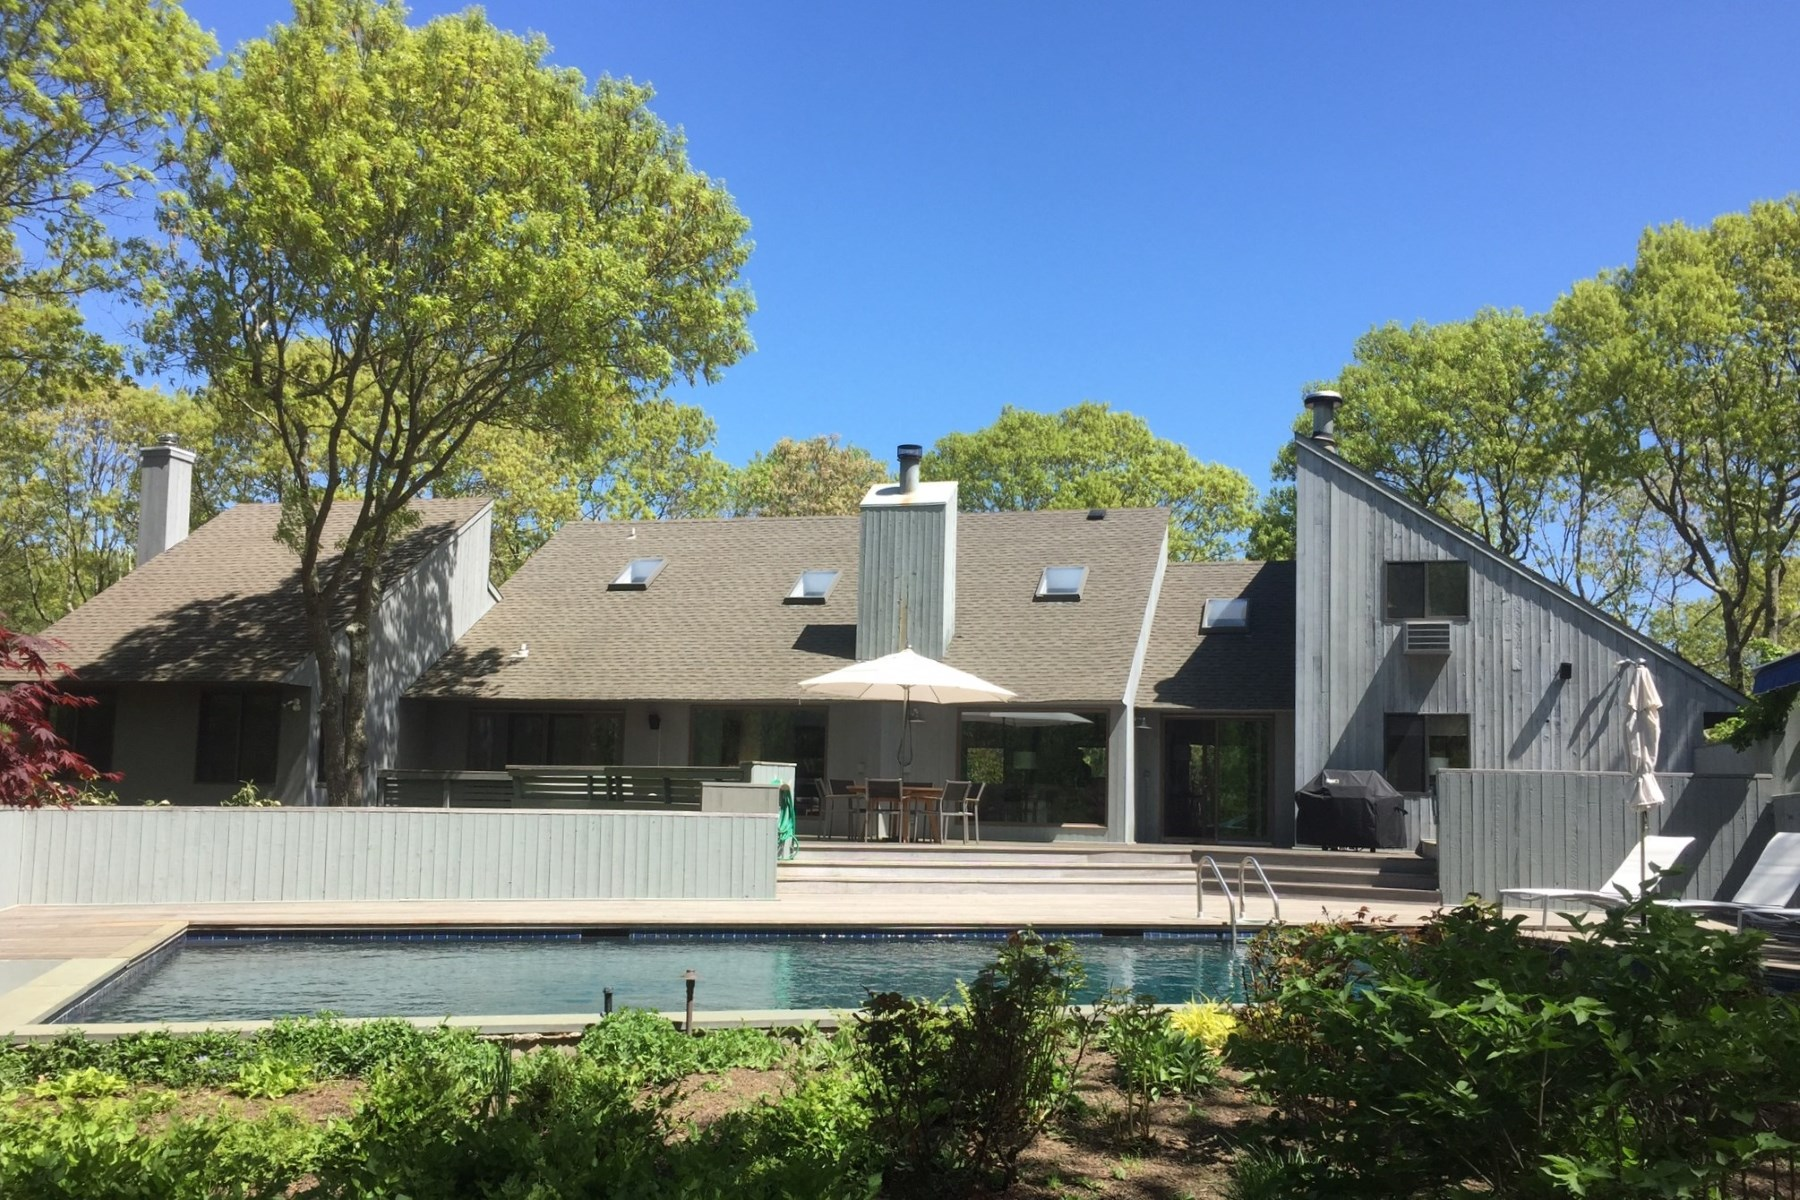 Single Family Home for Rent at Renovated 4 Bedroom Home with Pool 212 Treescape Drive East Hampton, New York 11937 United States